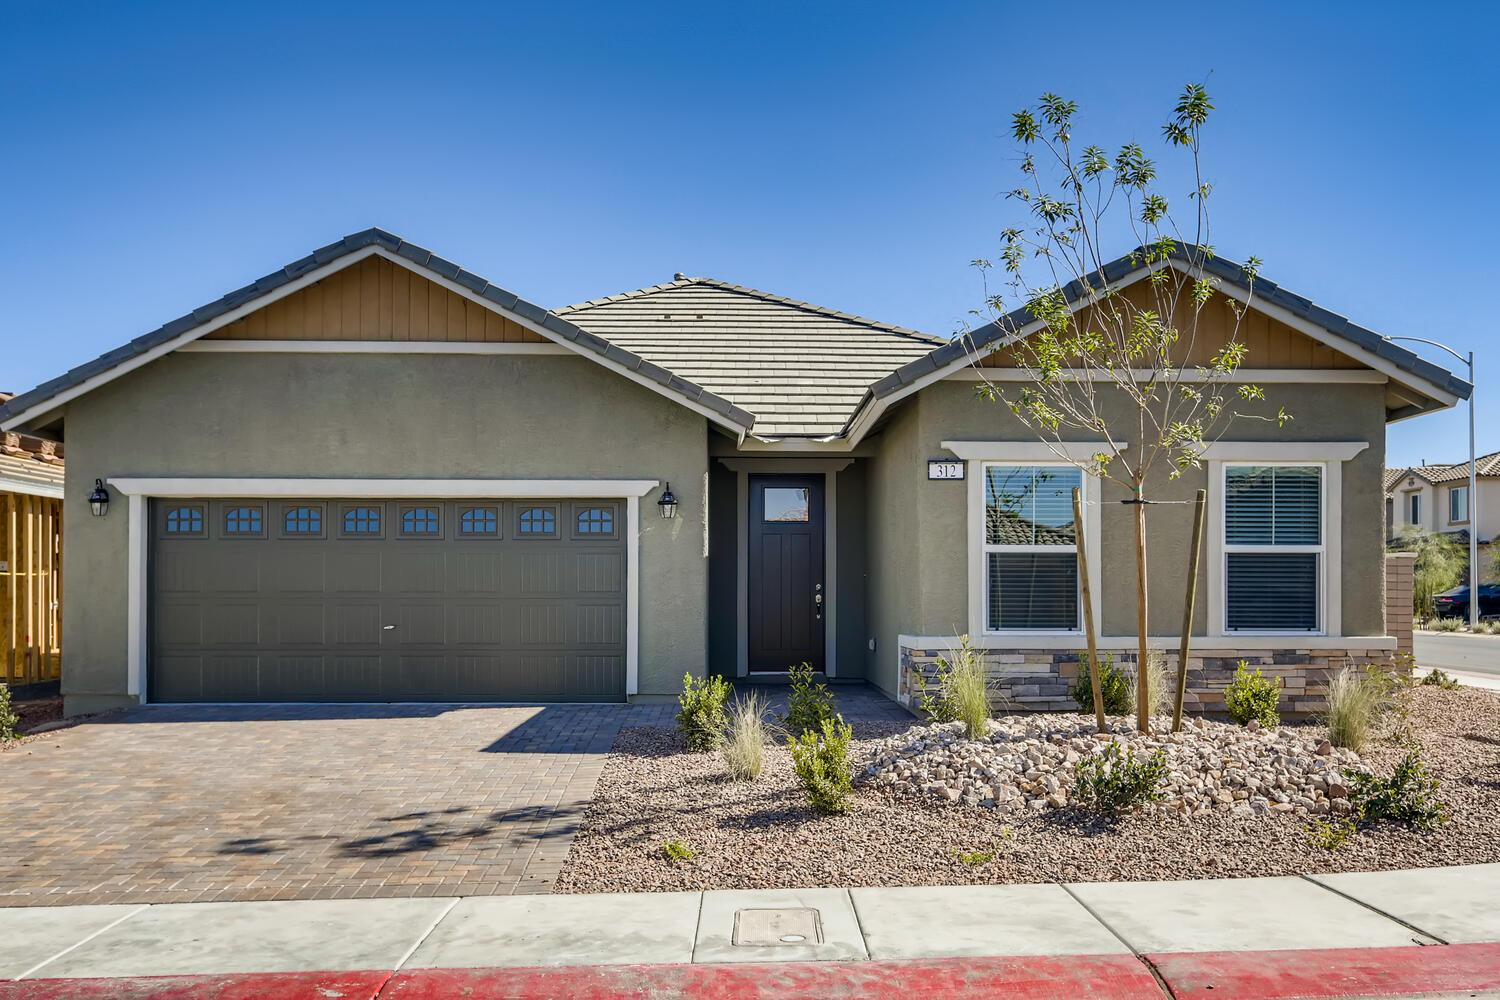 The Tempo by StoryBook Homes:The Tempo